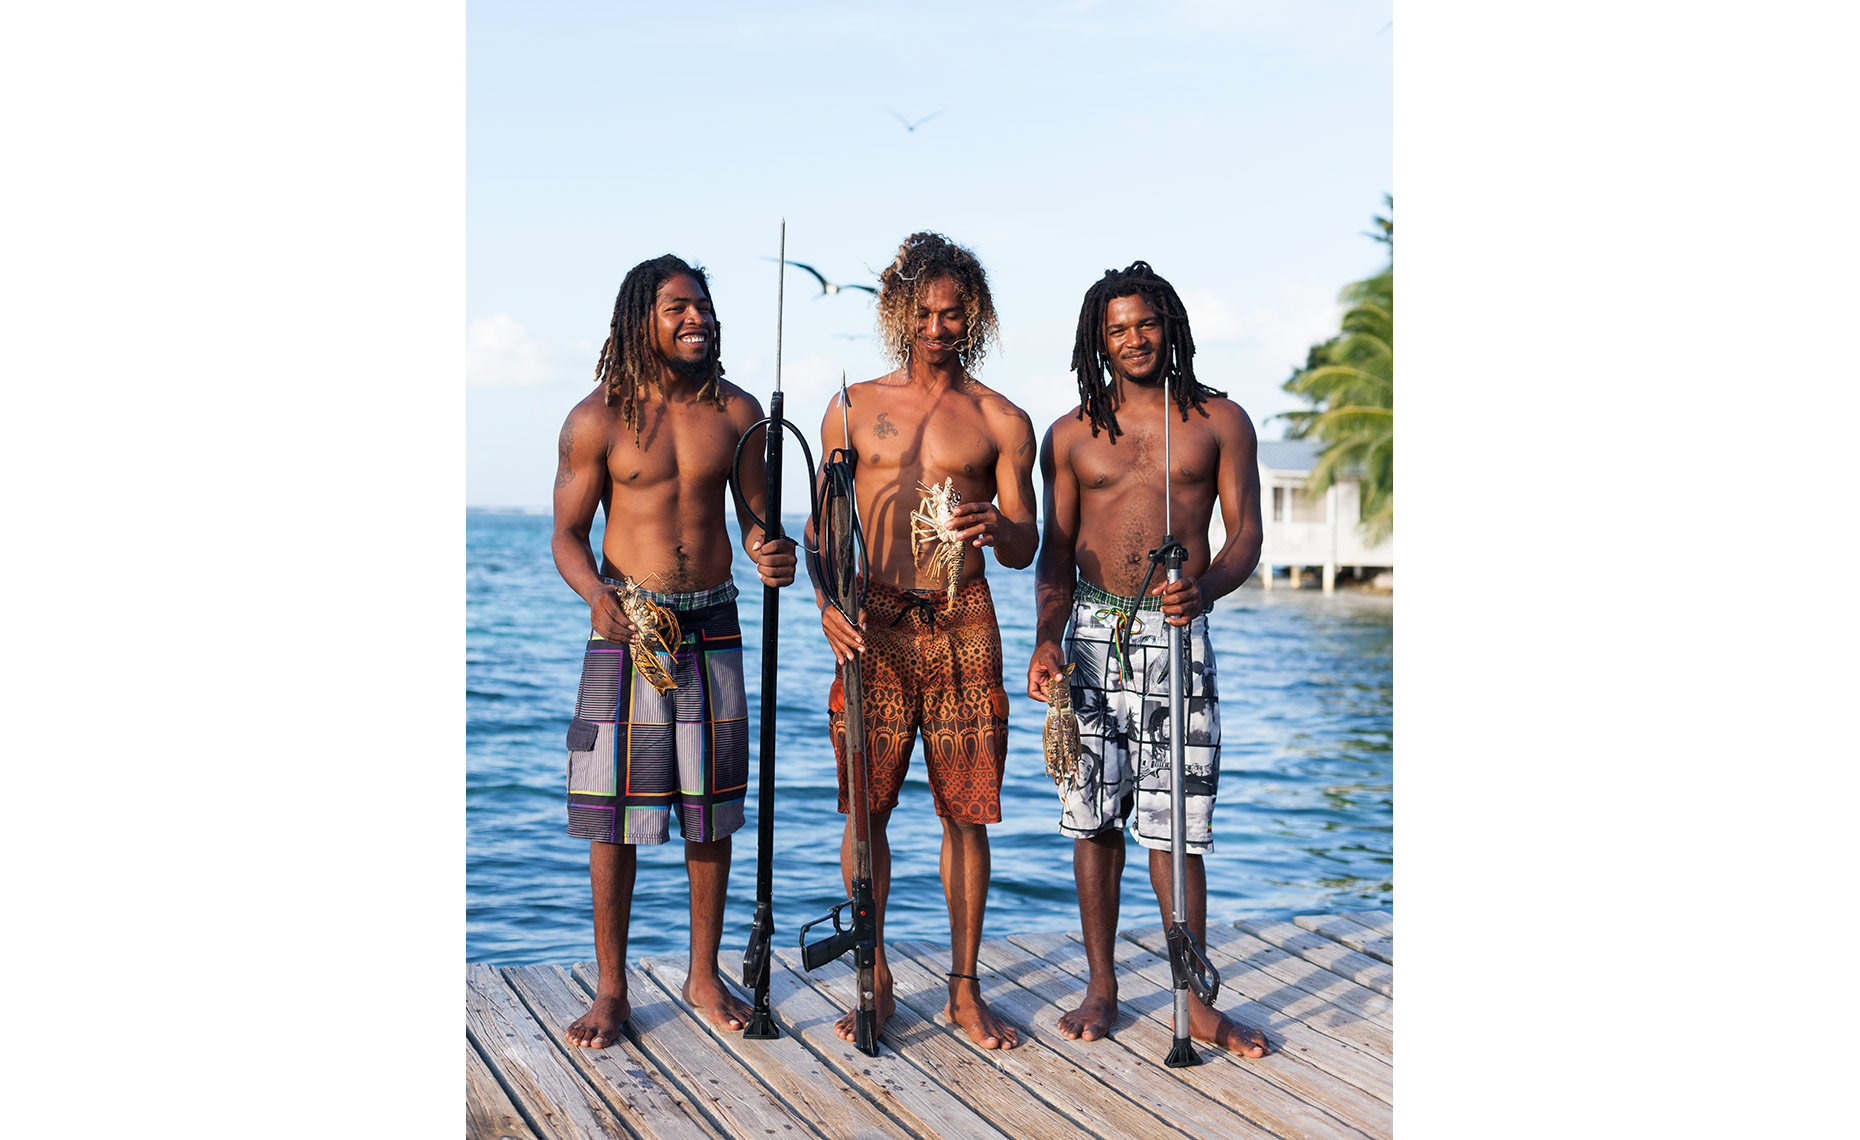 belize lobster rasta fisherman pier caye sailing raggamuffin